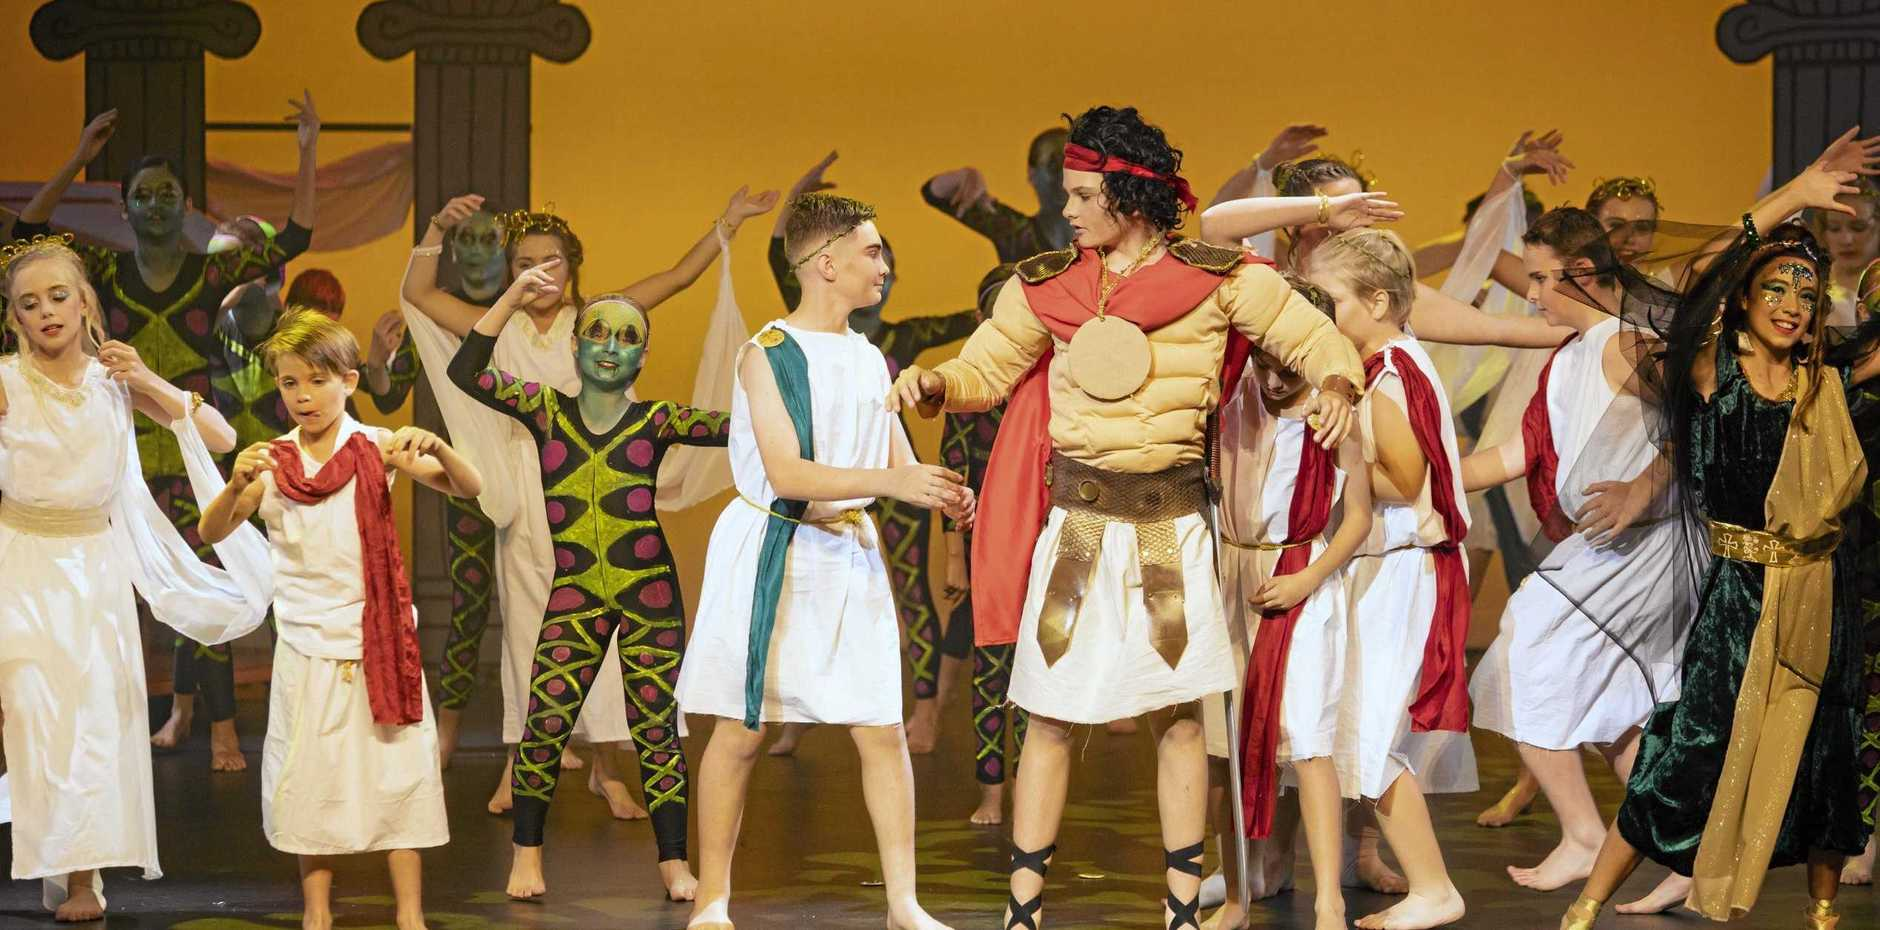 Dancers (from left) Jemma Lawn, Whyatt Doumergue, Amelie LeCoz, Luca Borg, Nicholas Hetherington, Lucas Temple and Kaitlin Naylor helped Glenella State School take out first place with their story dance about the Twelves Labours of Hercules.